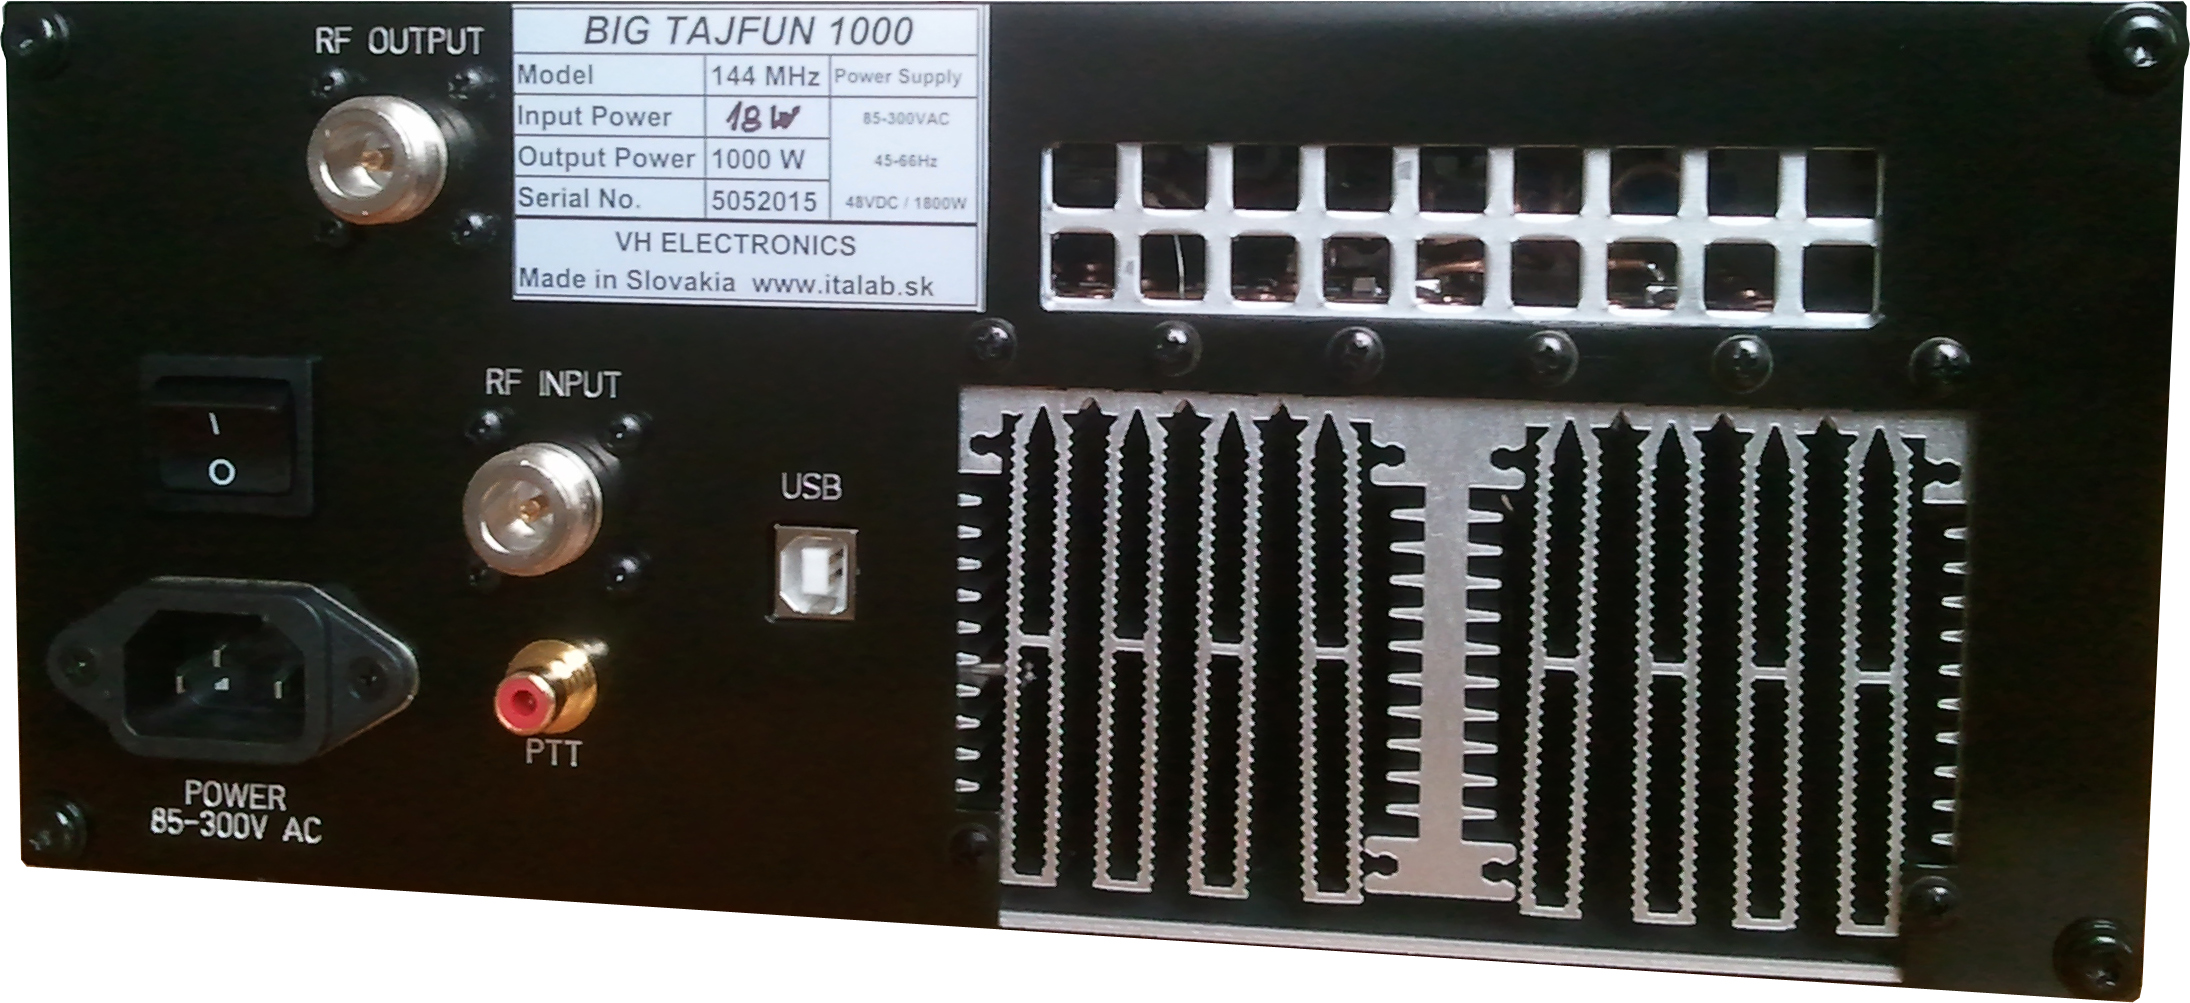 New ! BIG TAJFUN 1000 144 MHz - 1KW